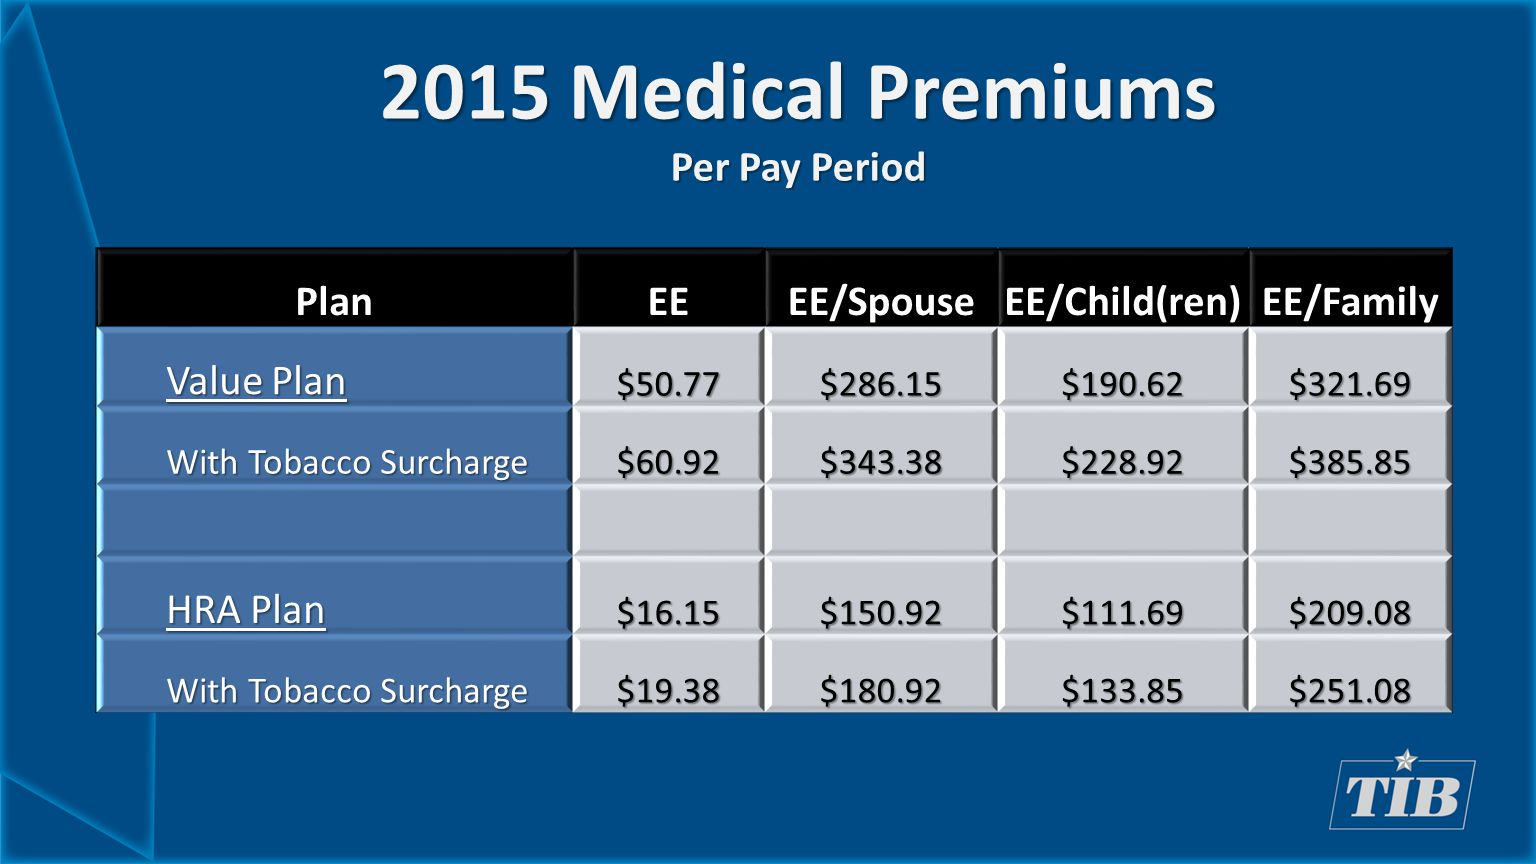 2015 Medical Premiums Per Pay Period PlanEEEE/SpouseEE/Child(ren)EE/Family Value Plan $50.77$286.15$190.62$321.69 With Tobacco Surcharge $60.92$343.38$228.92$385.85 HRA Plan $16.15$150.92$111.69$209.08 With Tobacco Surcharge $19.38$180.92$133.85$251.08